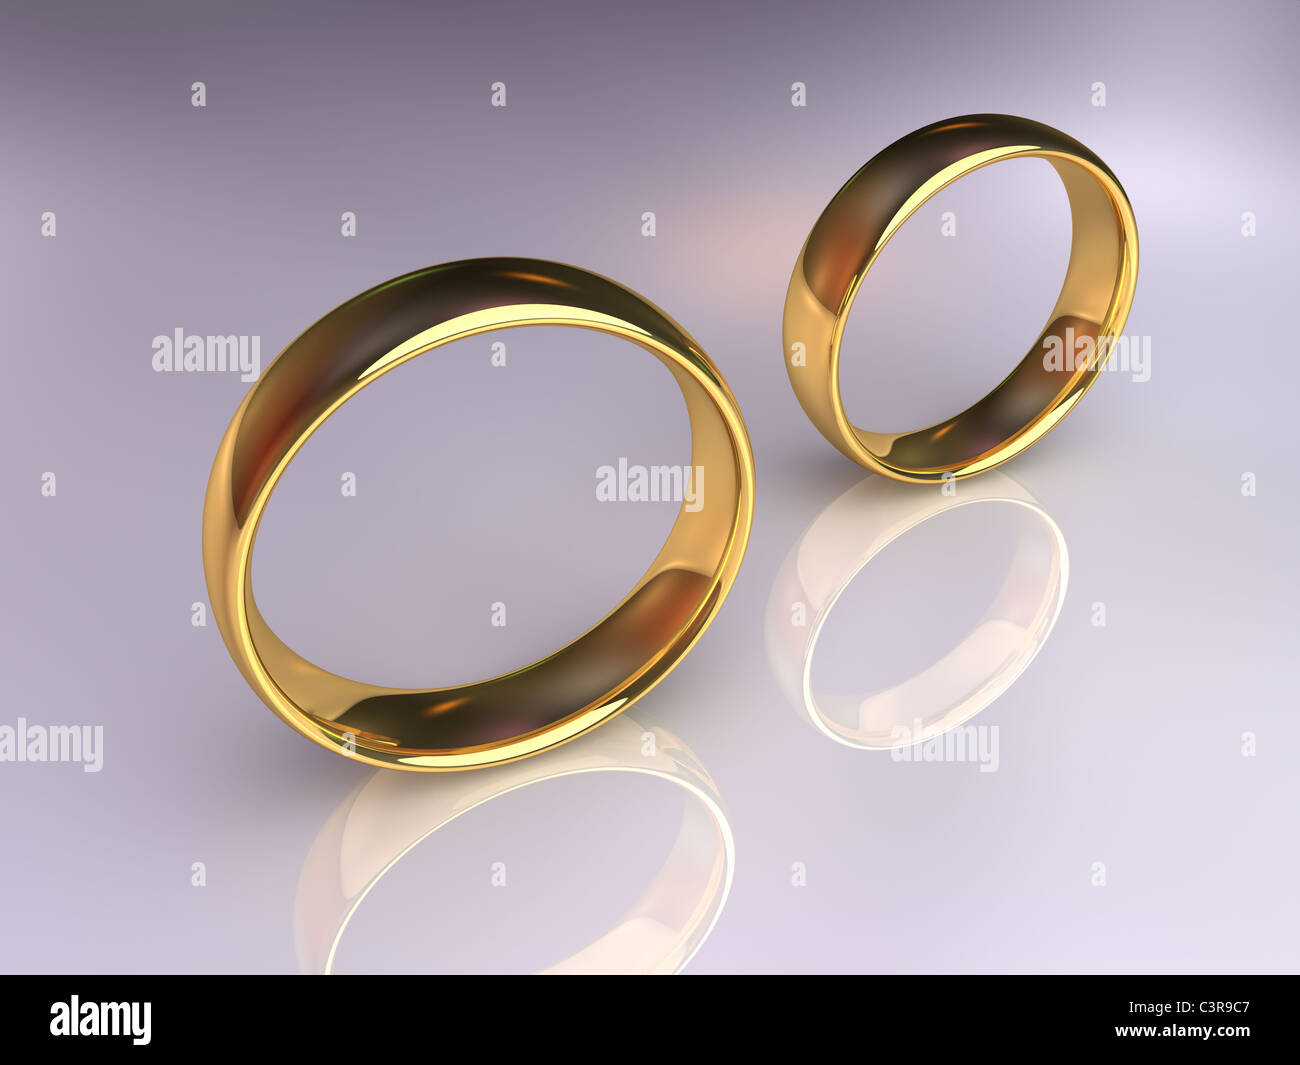 Two golden wedding rings together but apart, 3d render - Stock Image